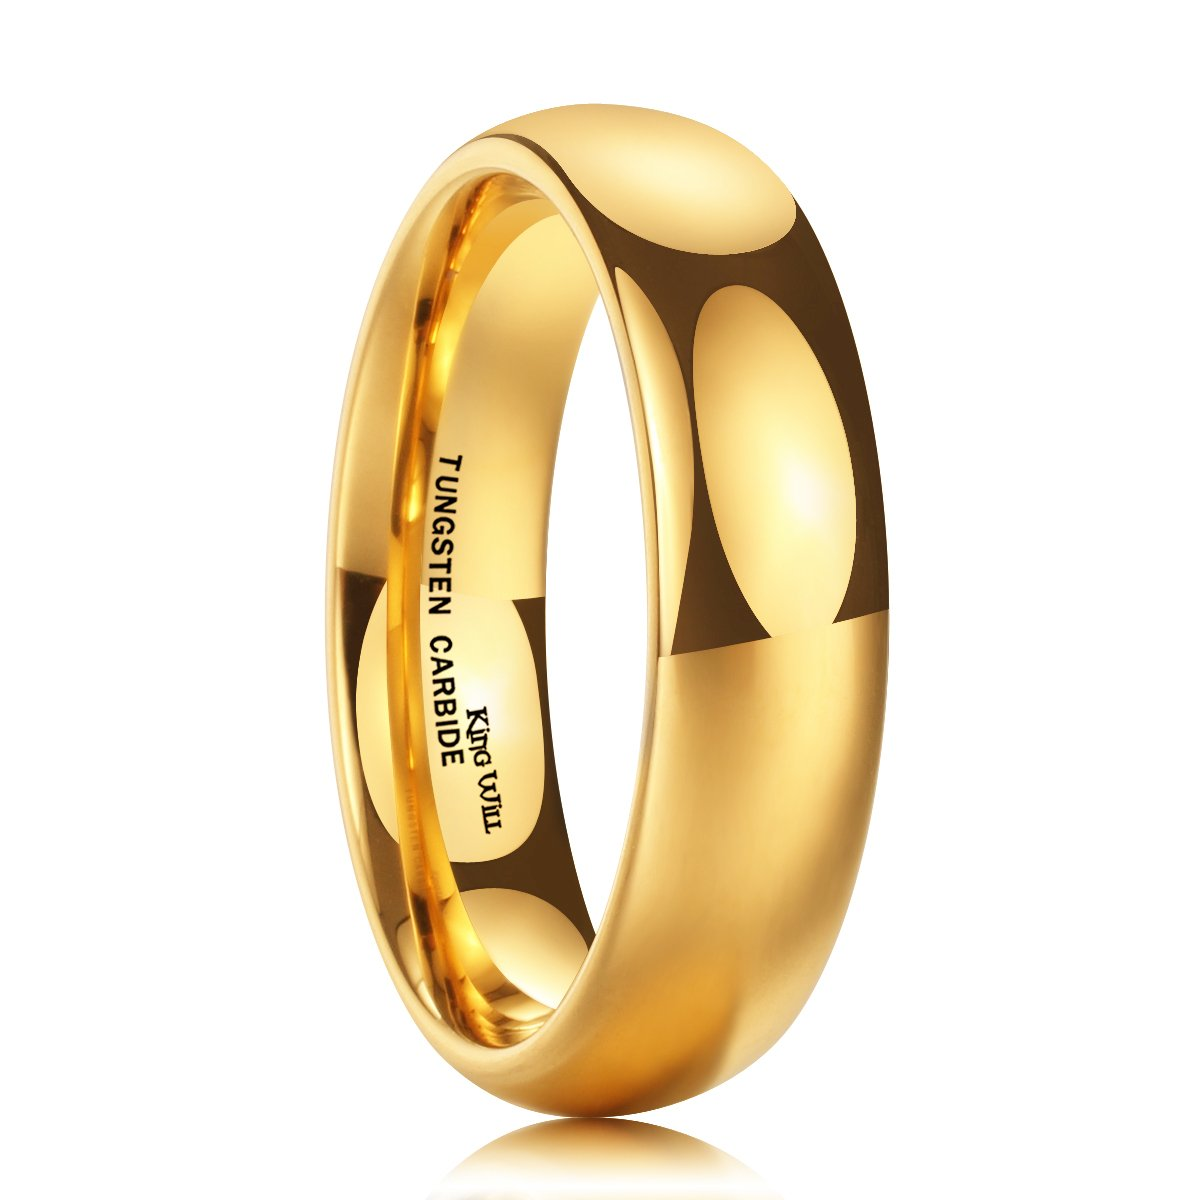 King Will Glory 6mm 24k Gold Plated High Polished Comfort Fit Domed Tungsten Ring Wedding Band 9.5